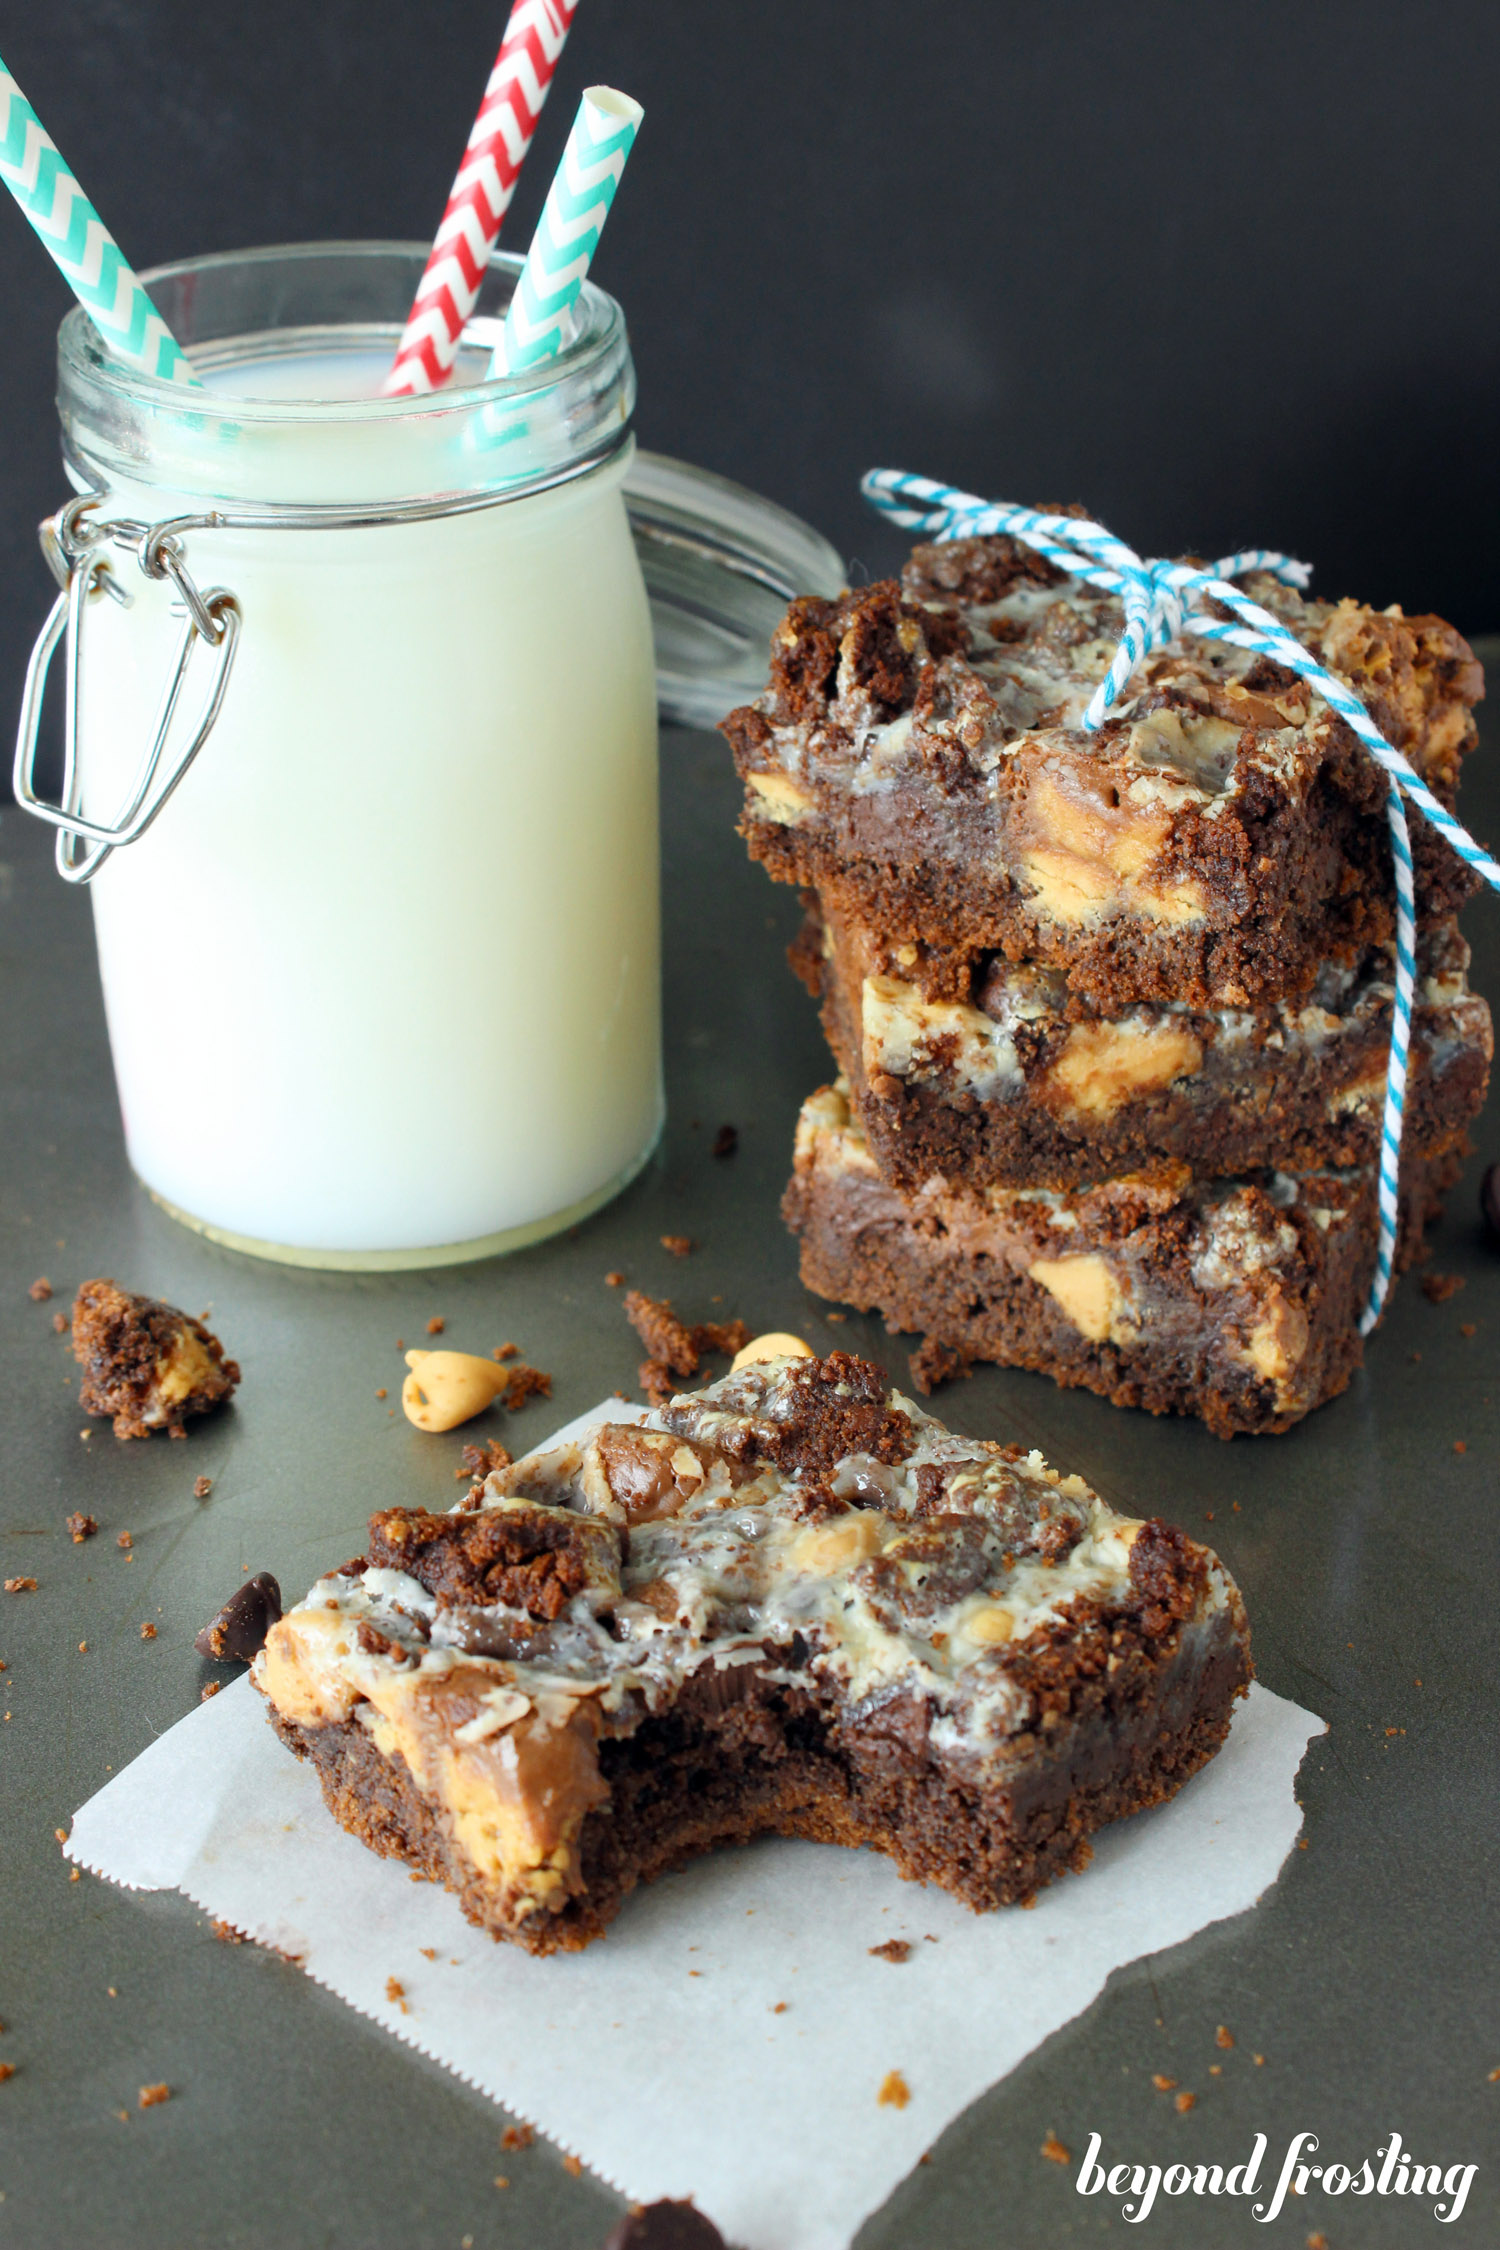 ... peanut butter whether you prefer chocolate or peanut butter these bars